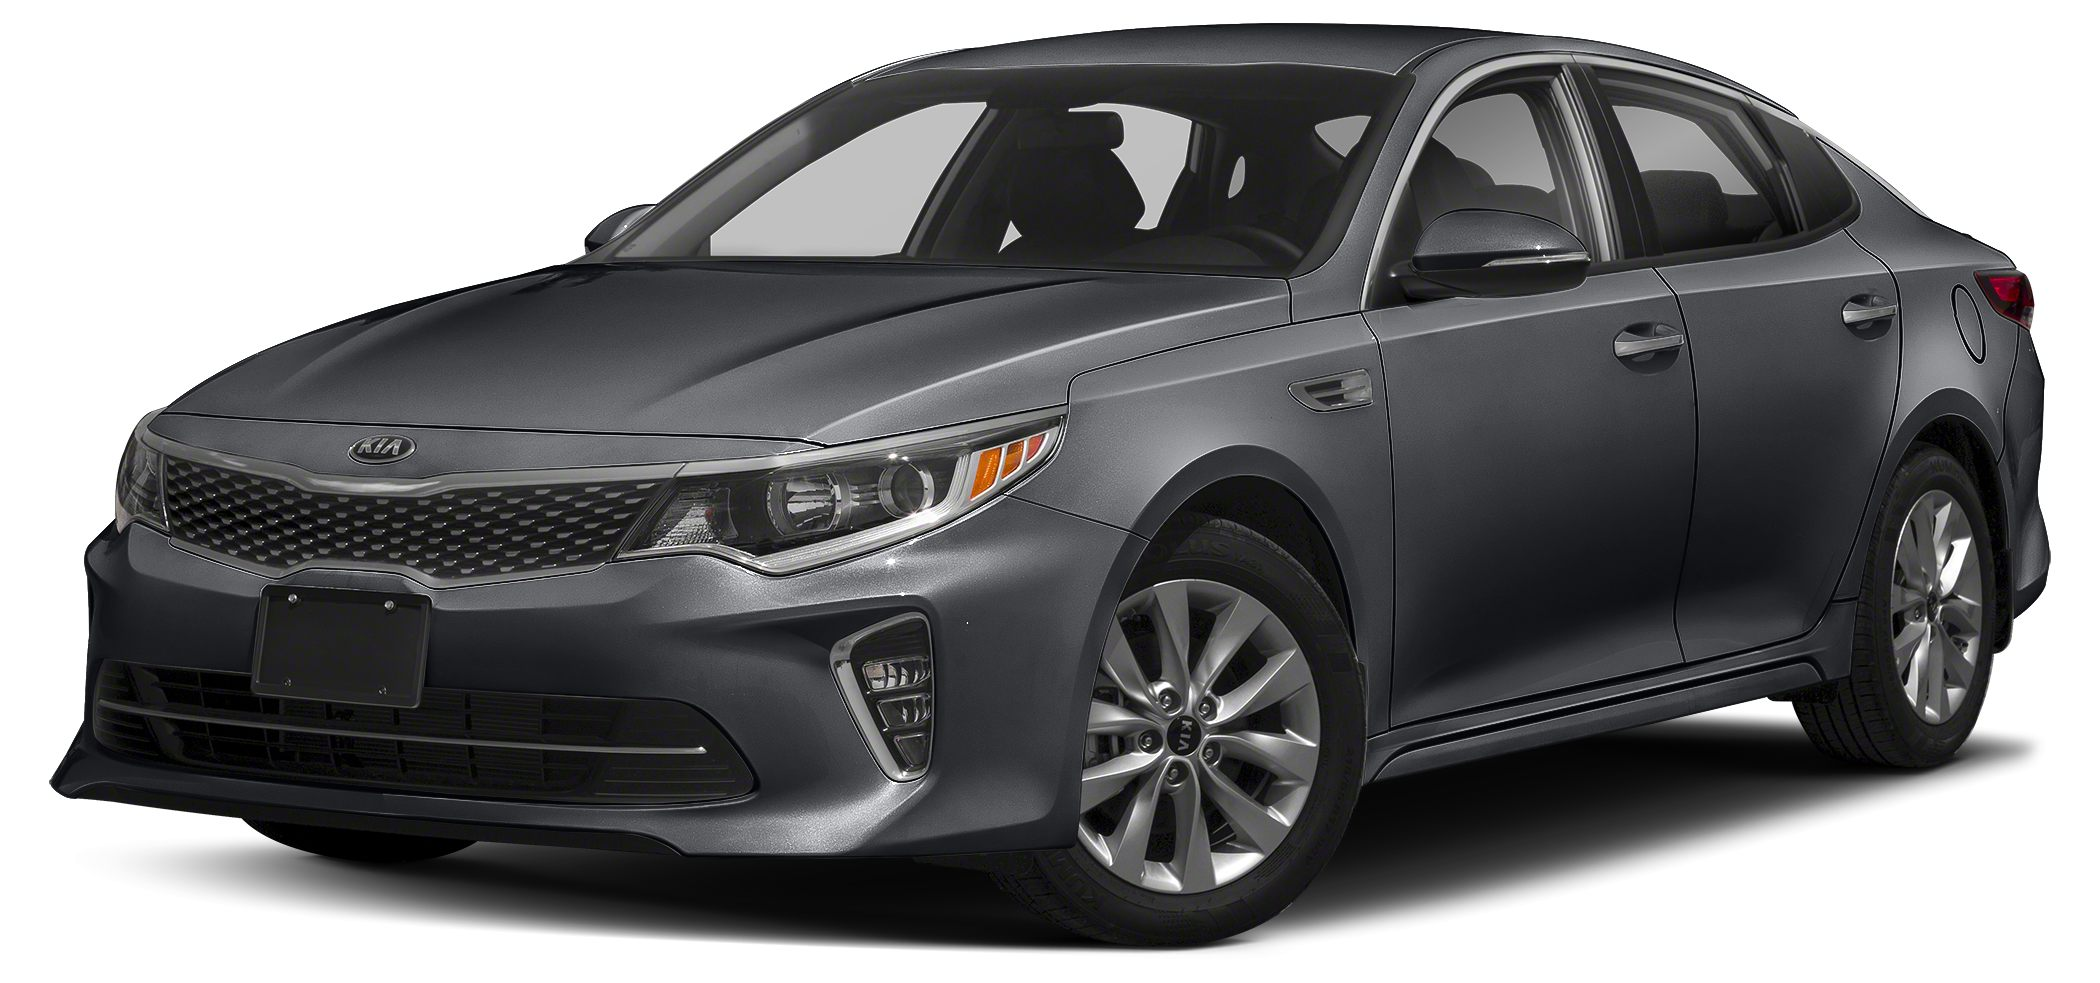 2018 Kia Optima S With curves in all the right places the 2018 Kia Optima is a masterpiece of for